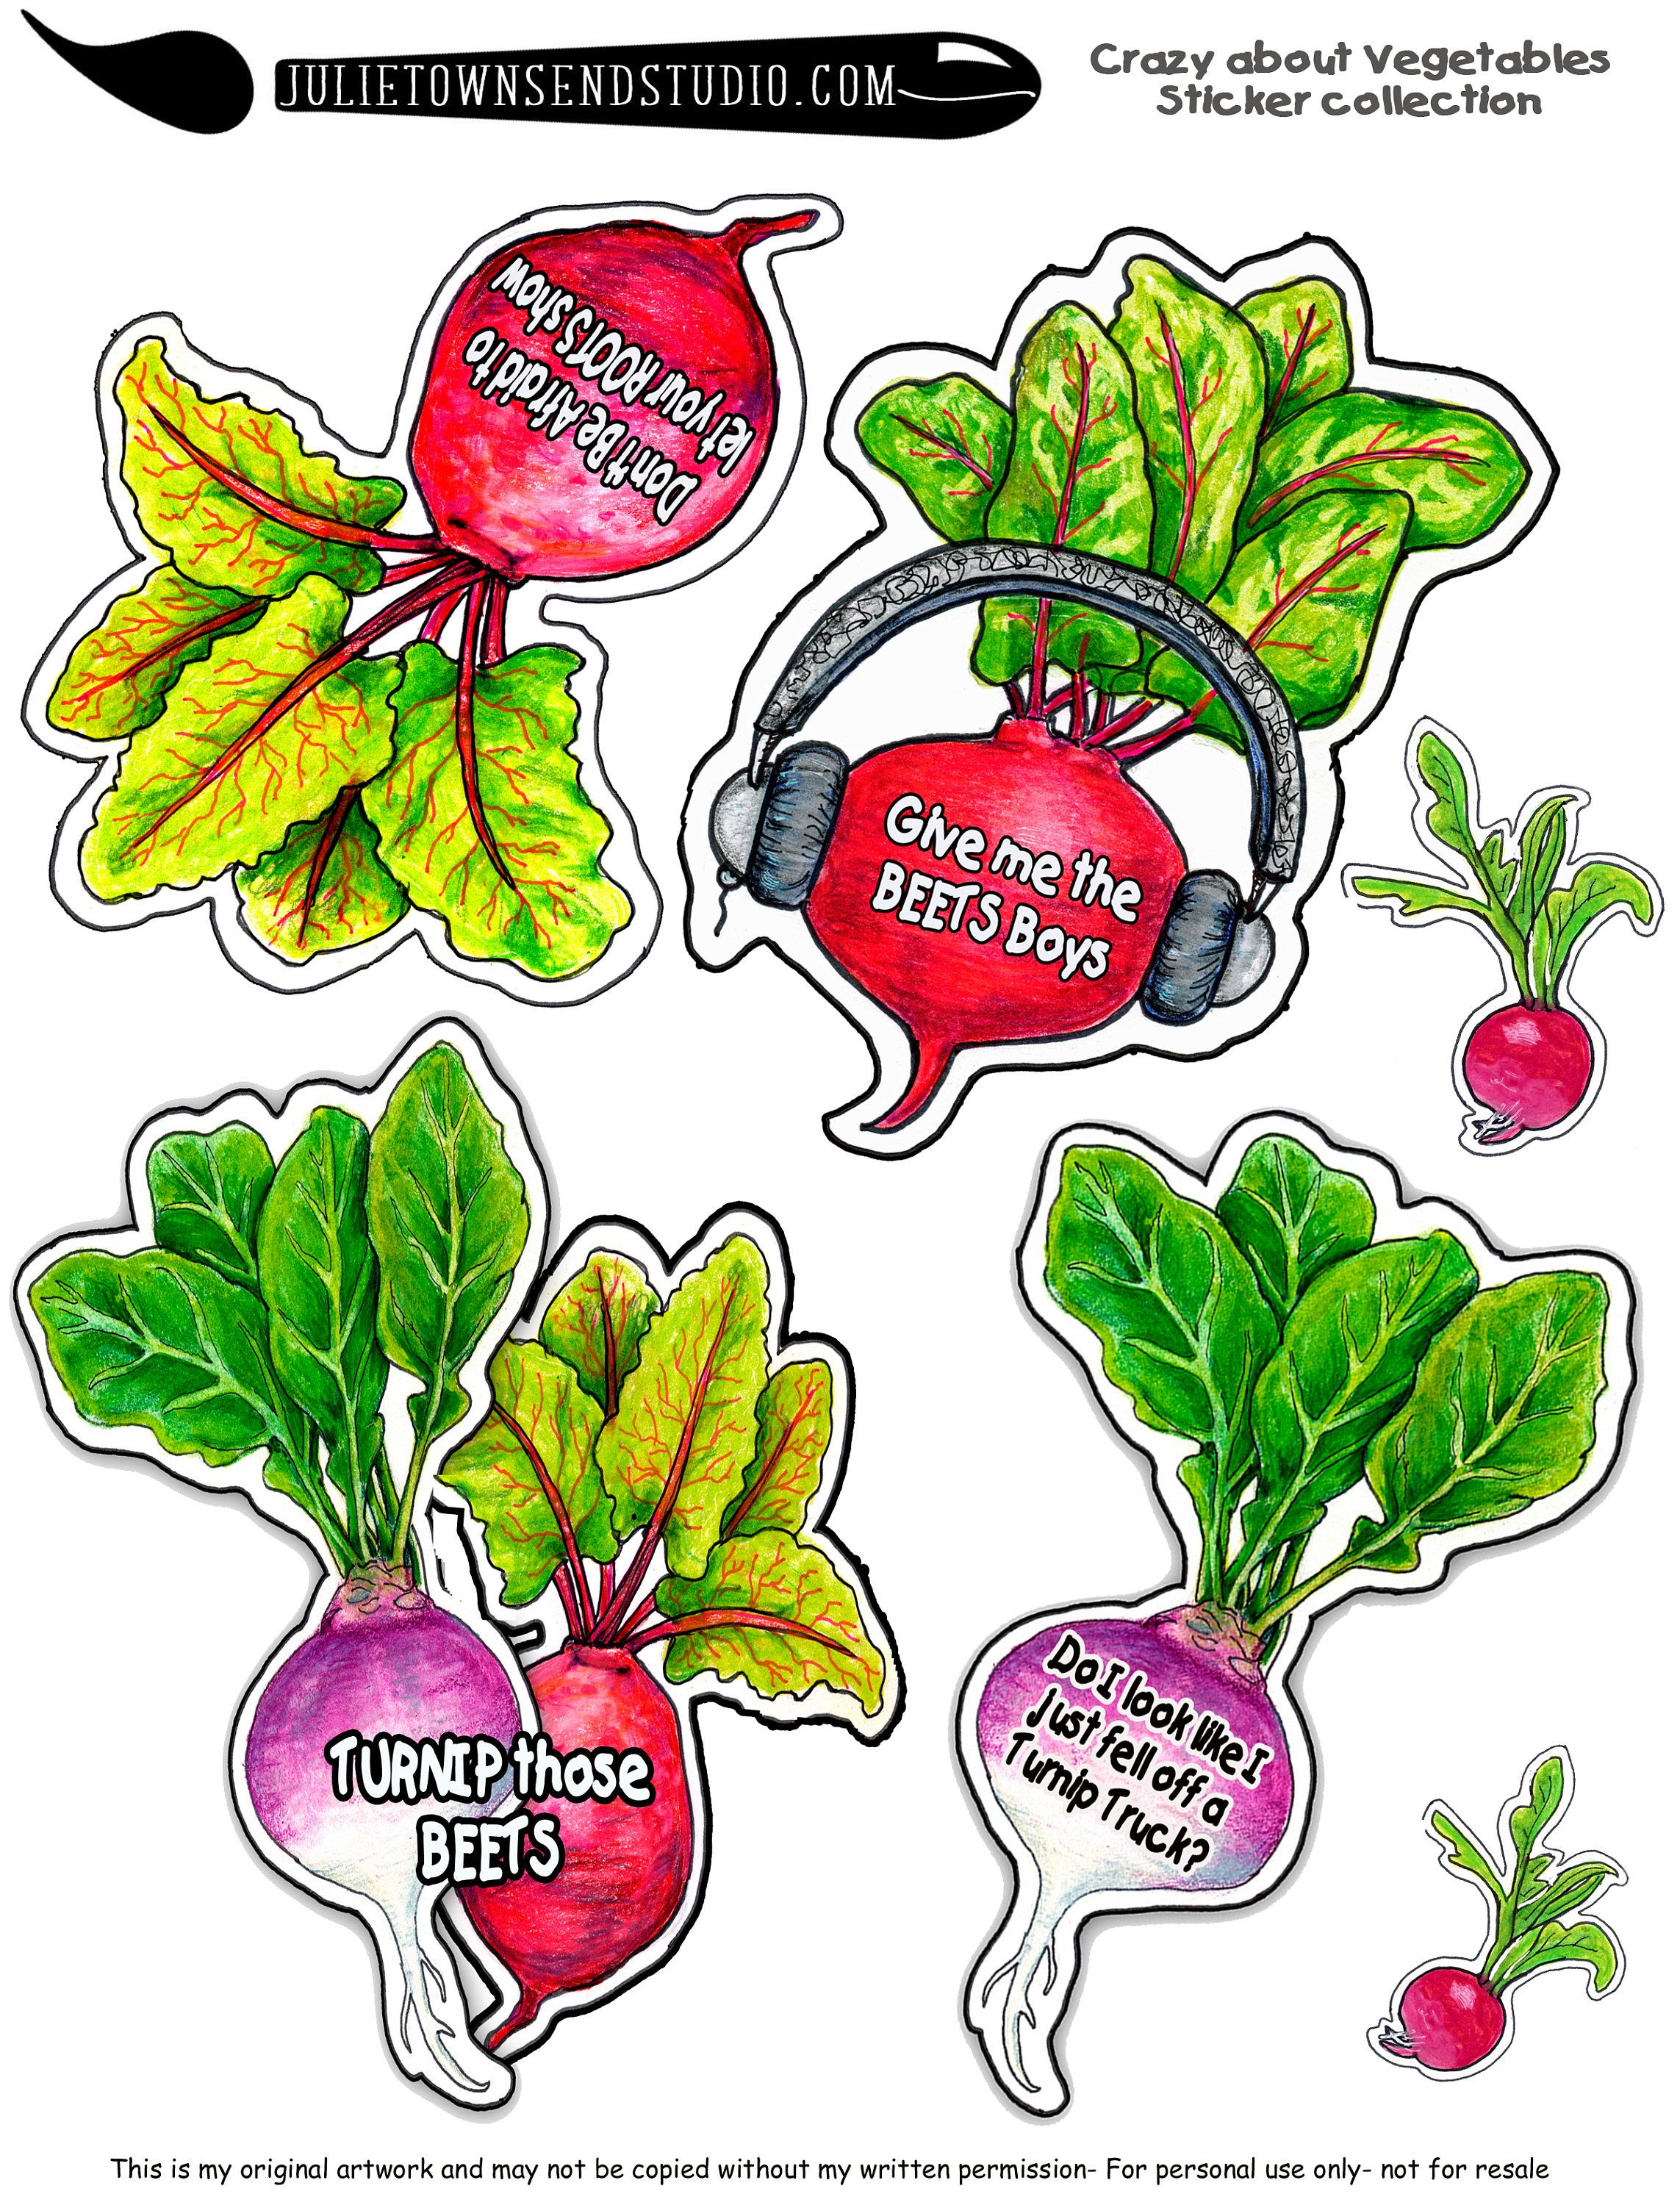 Downloadable Funny Homemade Stickers, Colorful Vegetable